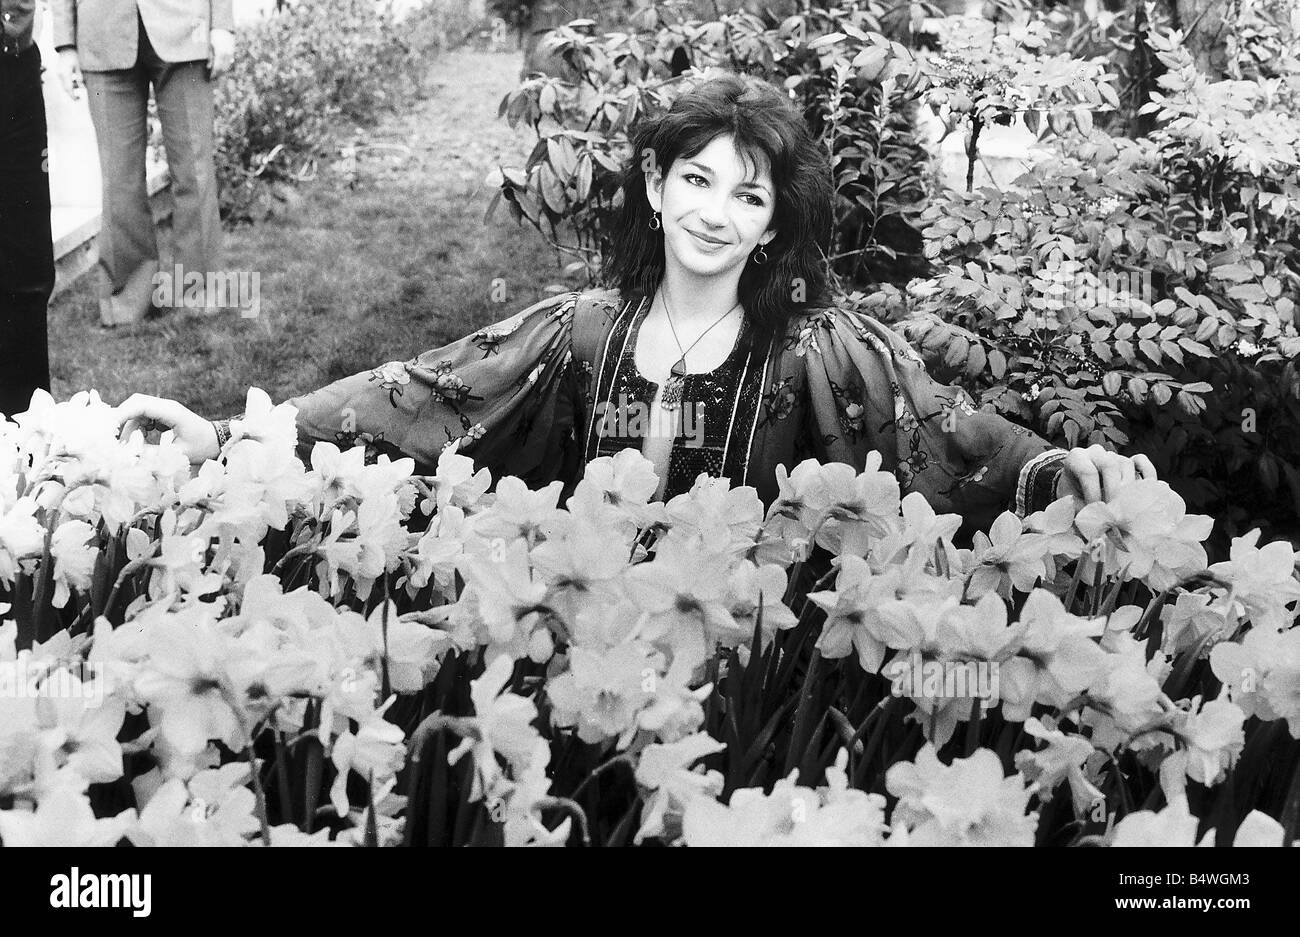 Pop singer Kate Bush poses in a garden full of daffodils and trees December 1979 - Stock Image